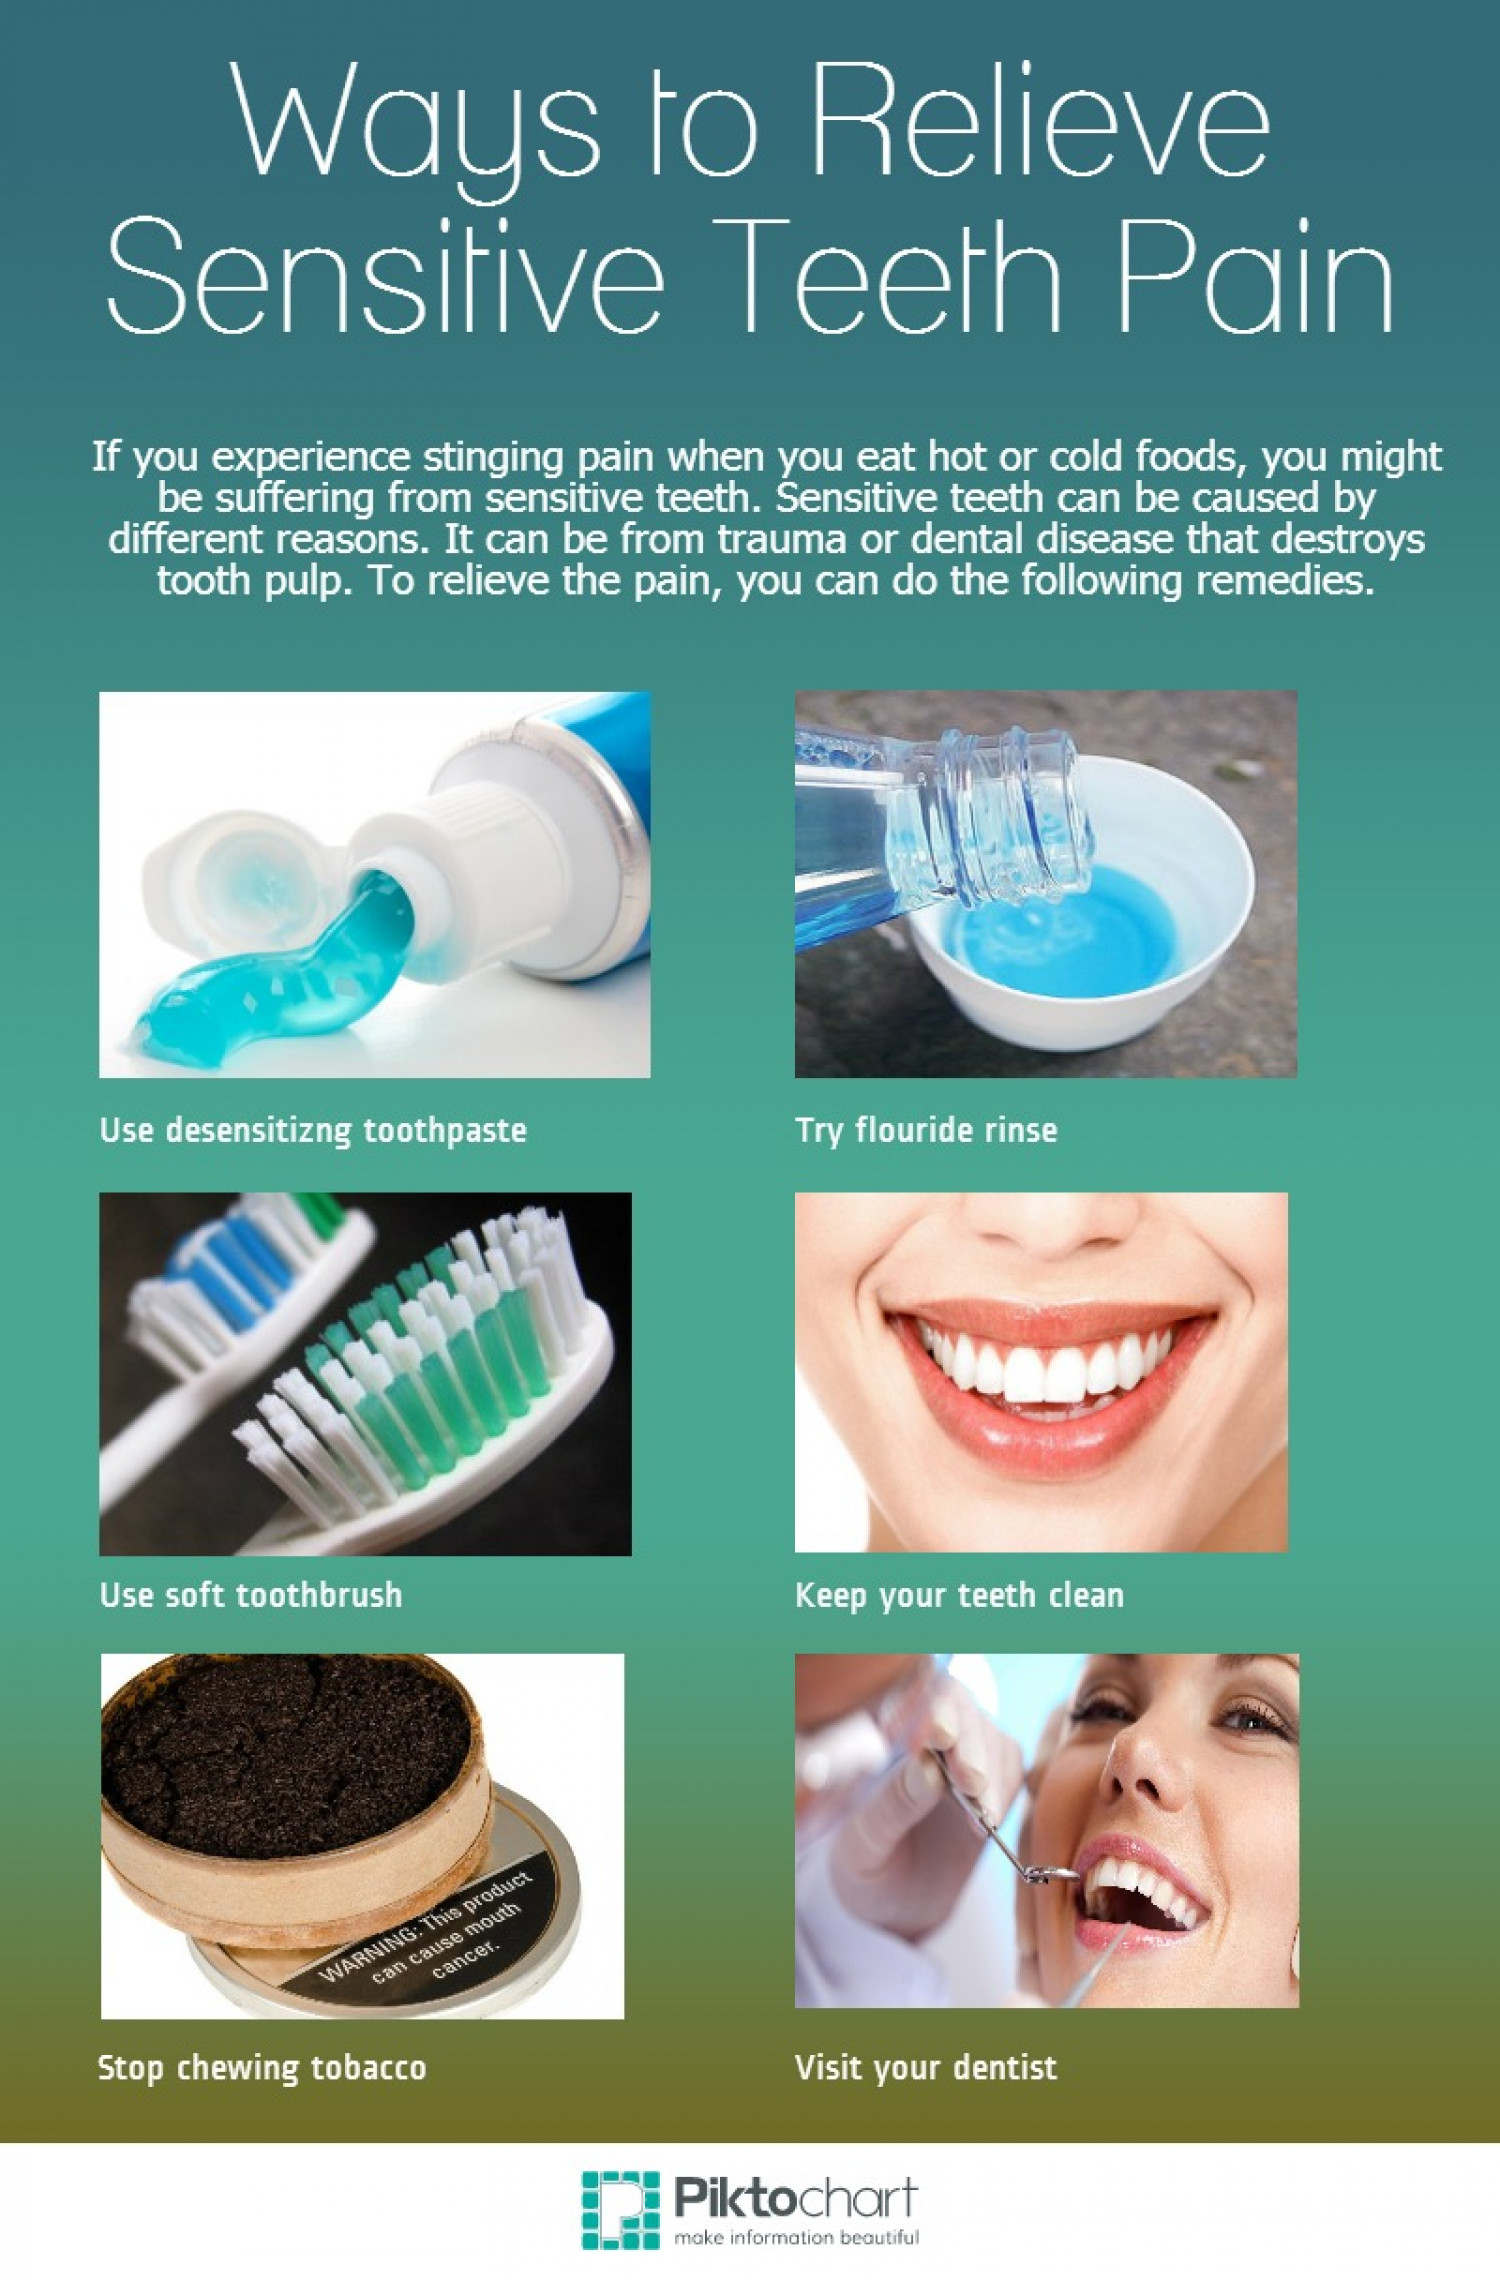 ways to relieve sensitive teeth pain | visual.ly